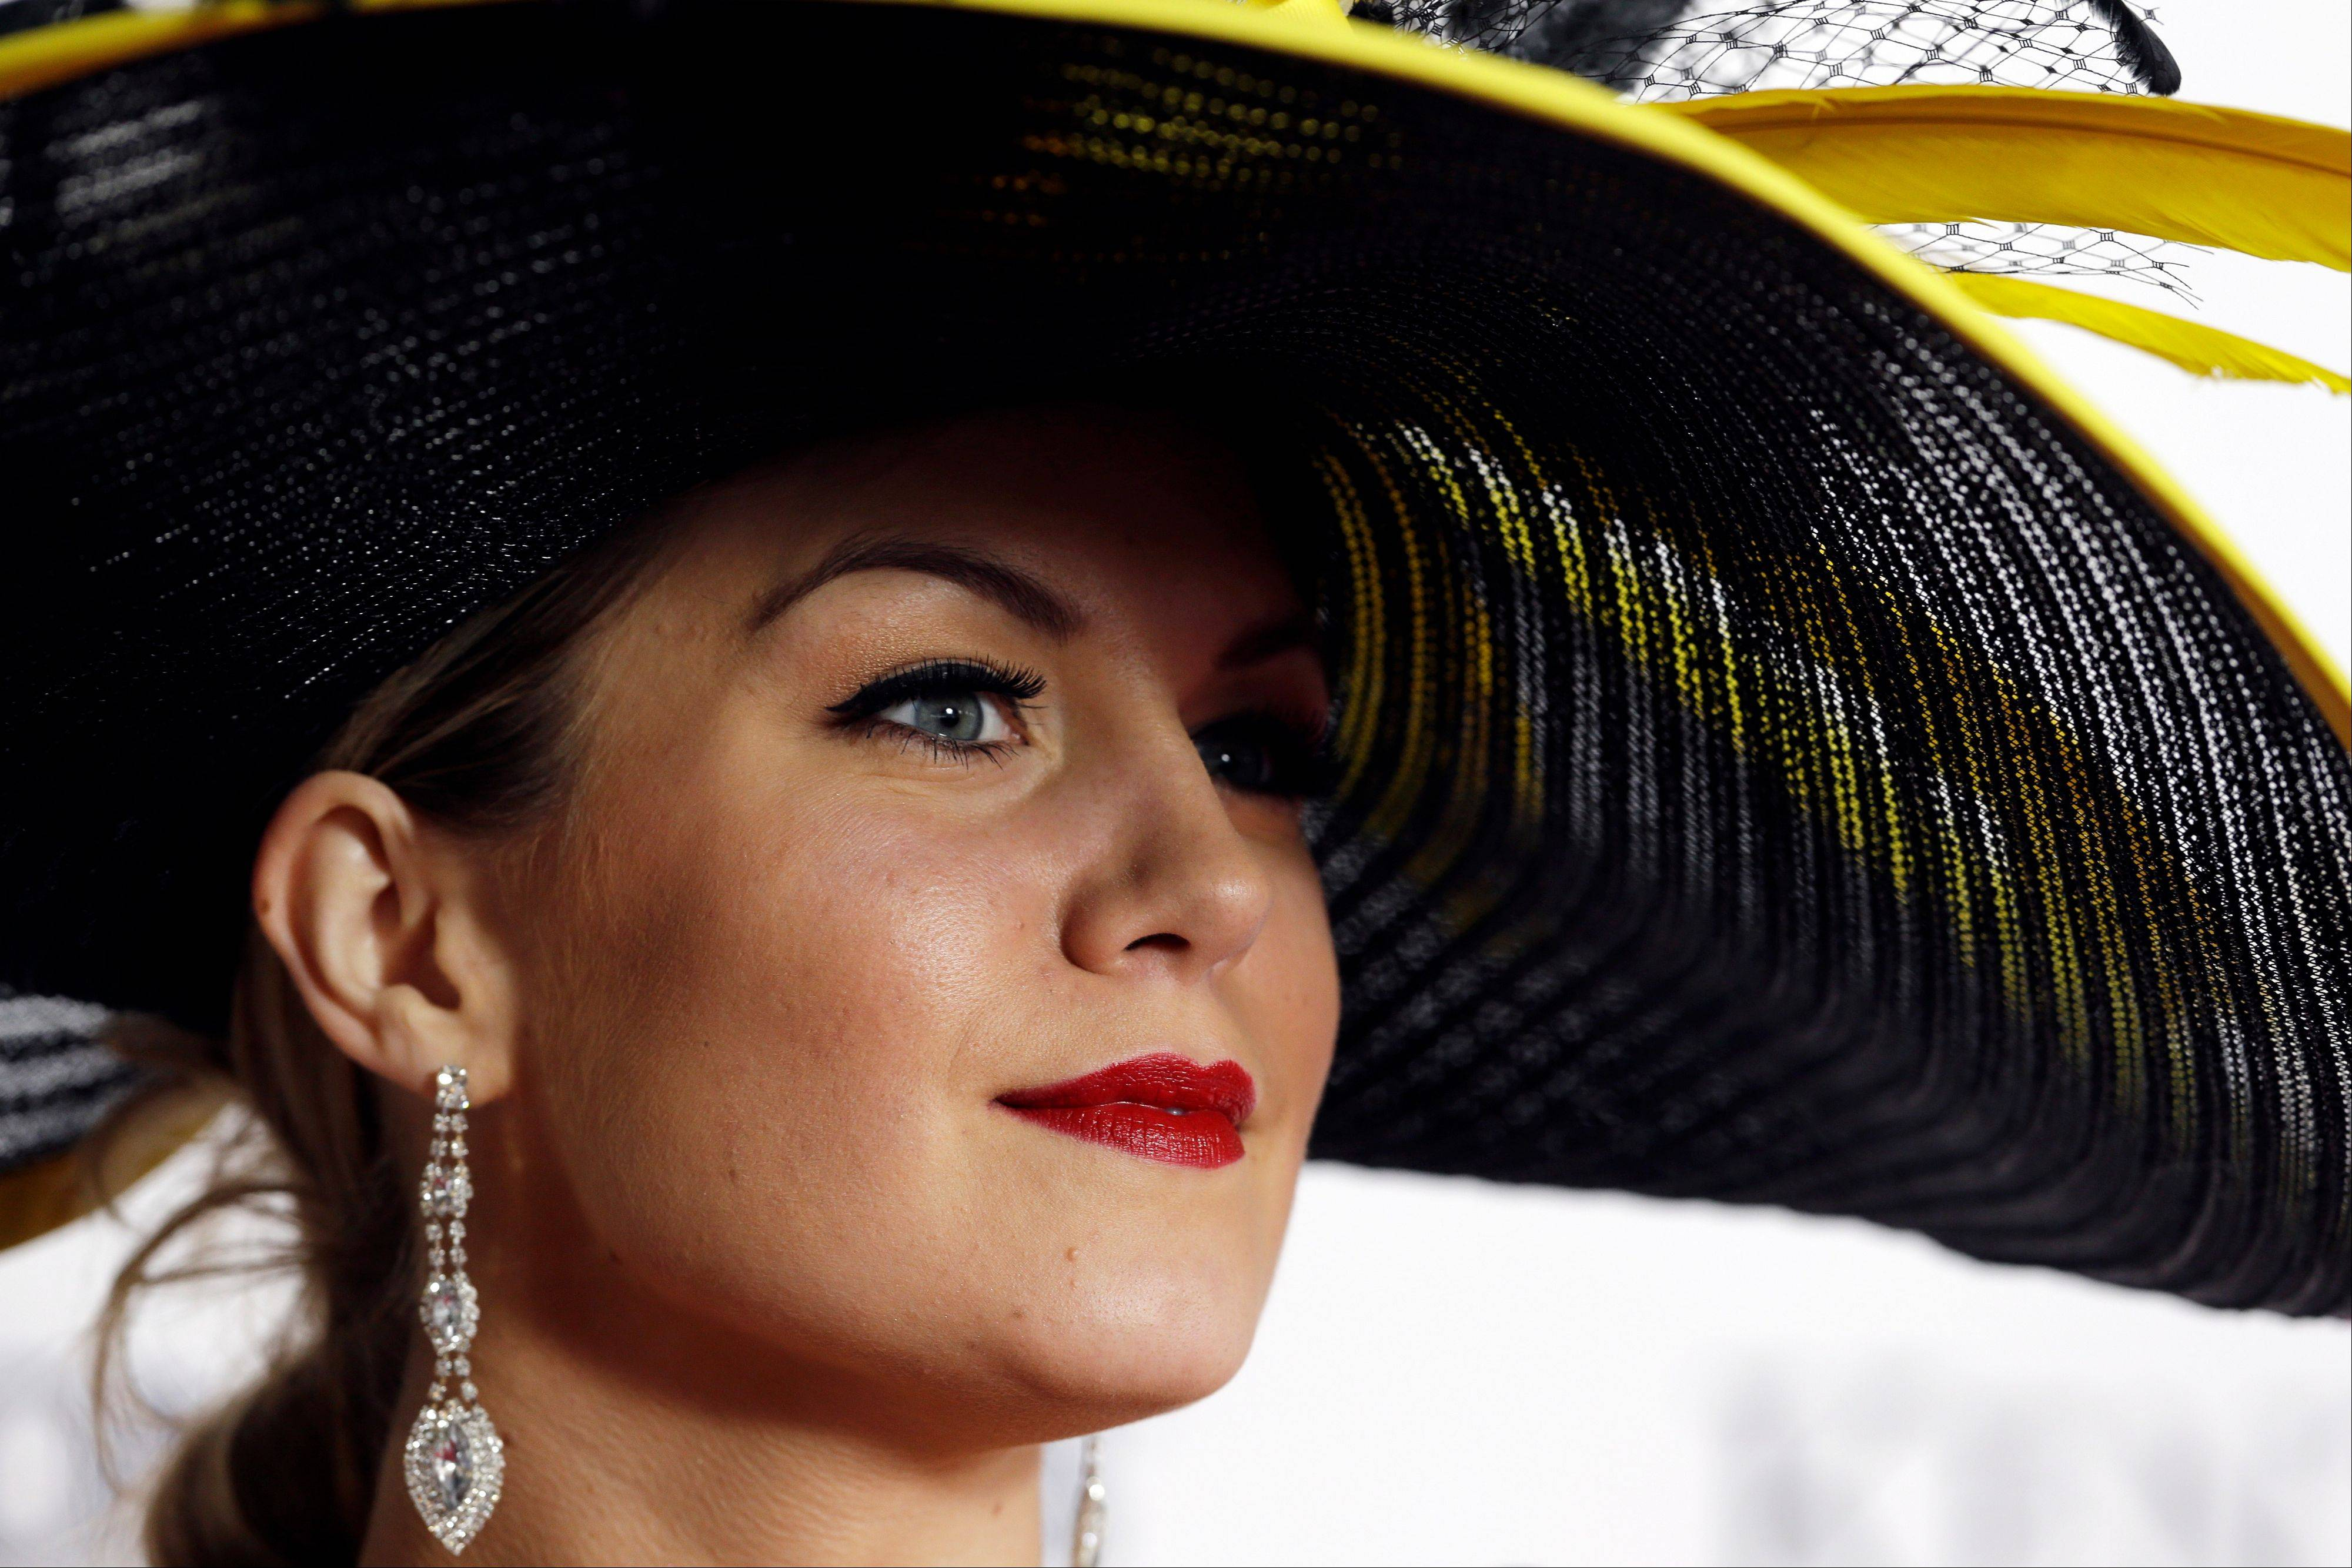 Miss American 2013 Mallory Hagan arrives to attend the 139th Kentucky Derby at Churchill Downs.